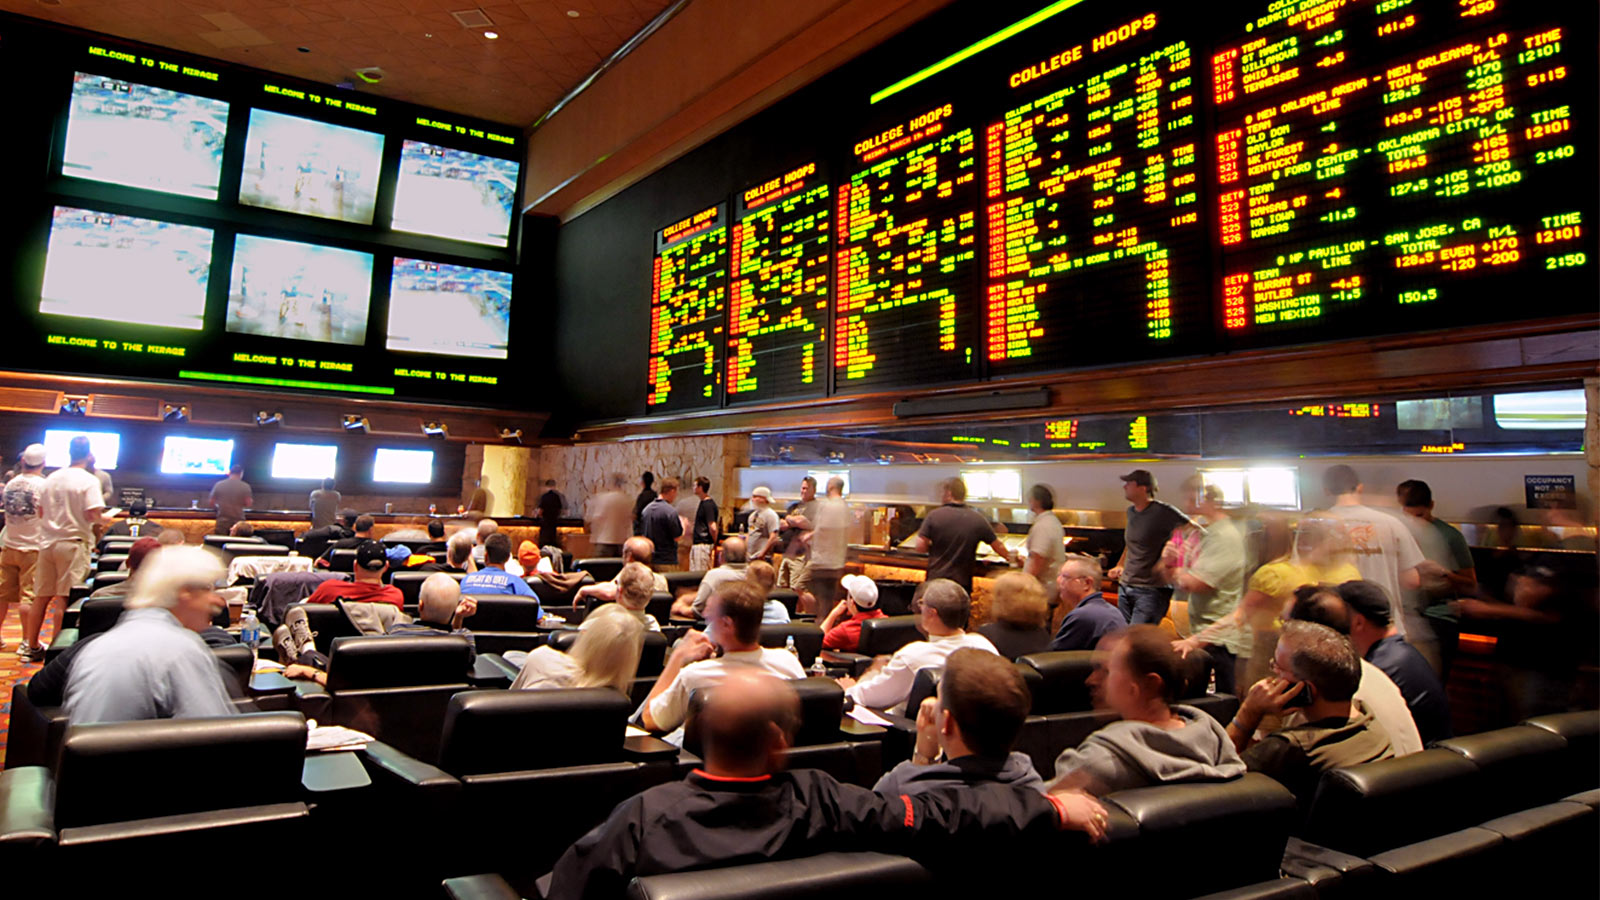 your sports games cris sportsbook